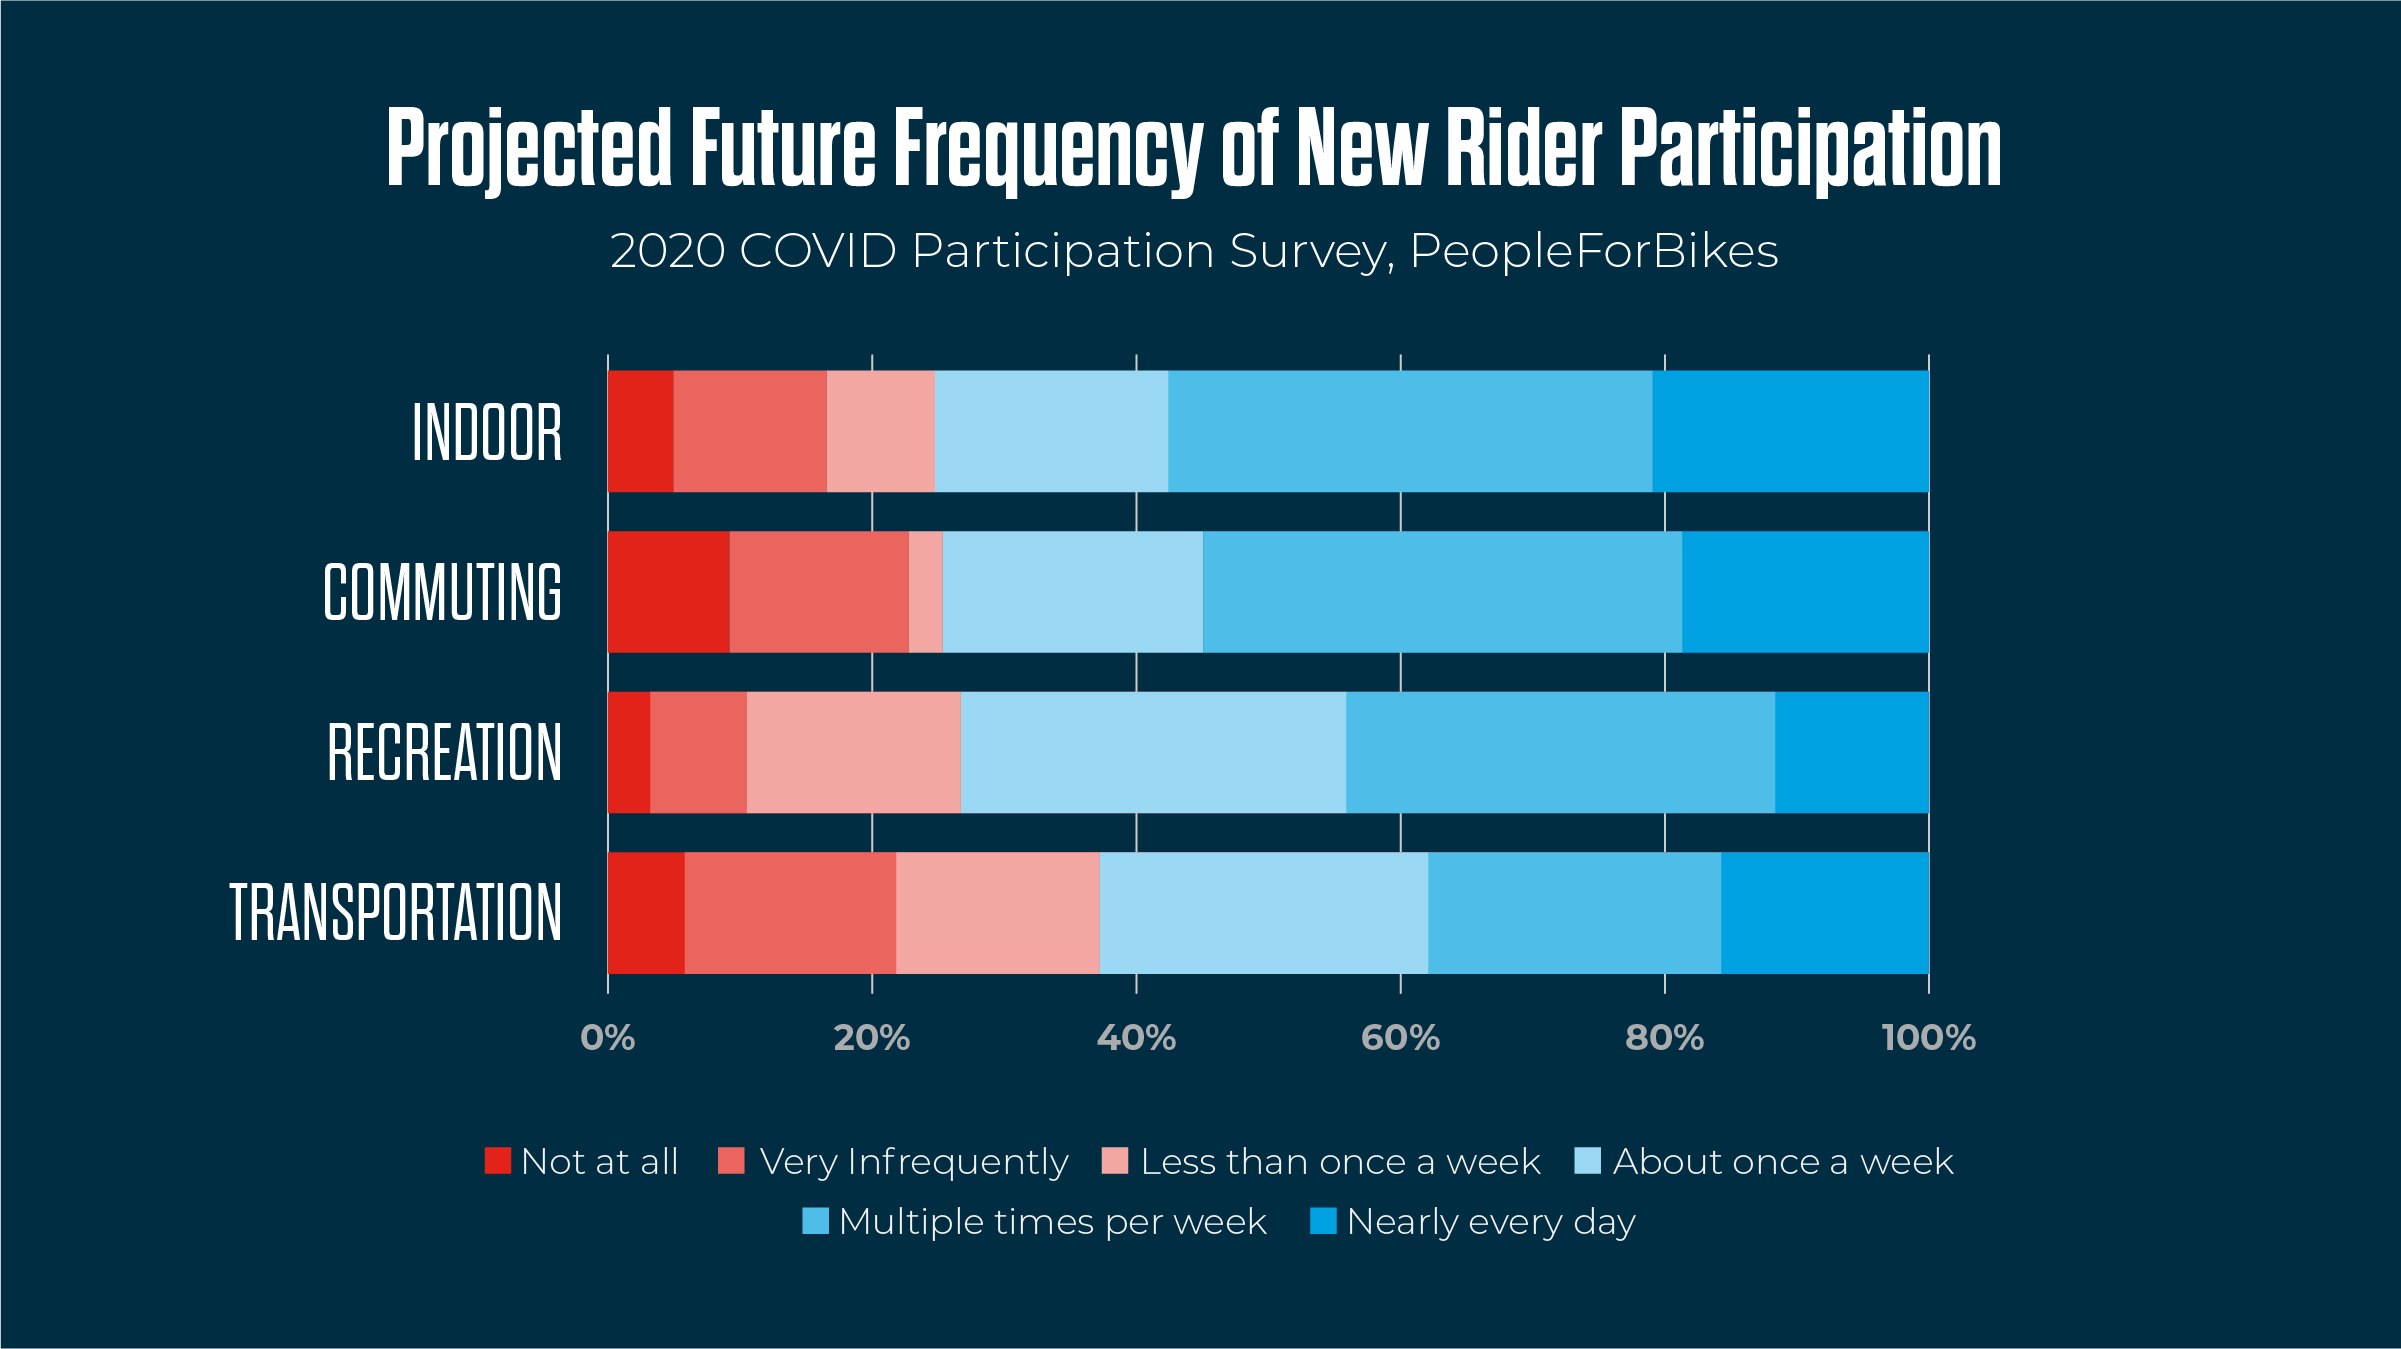 New Riders and Future Frequency